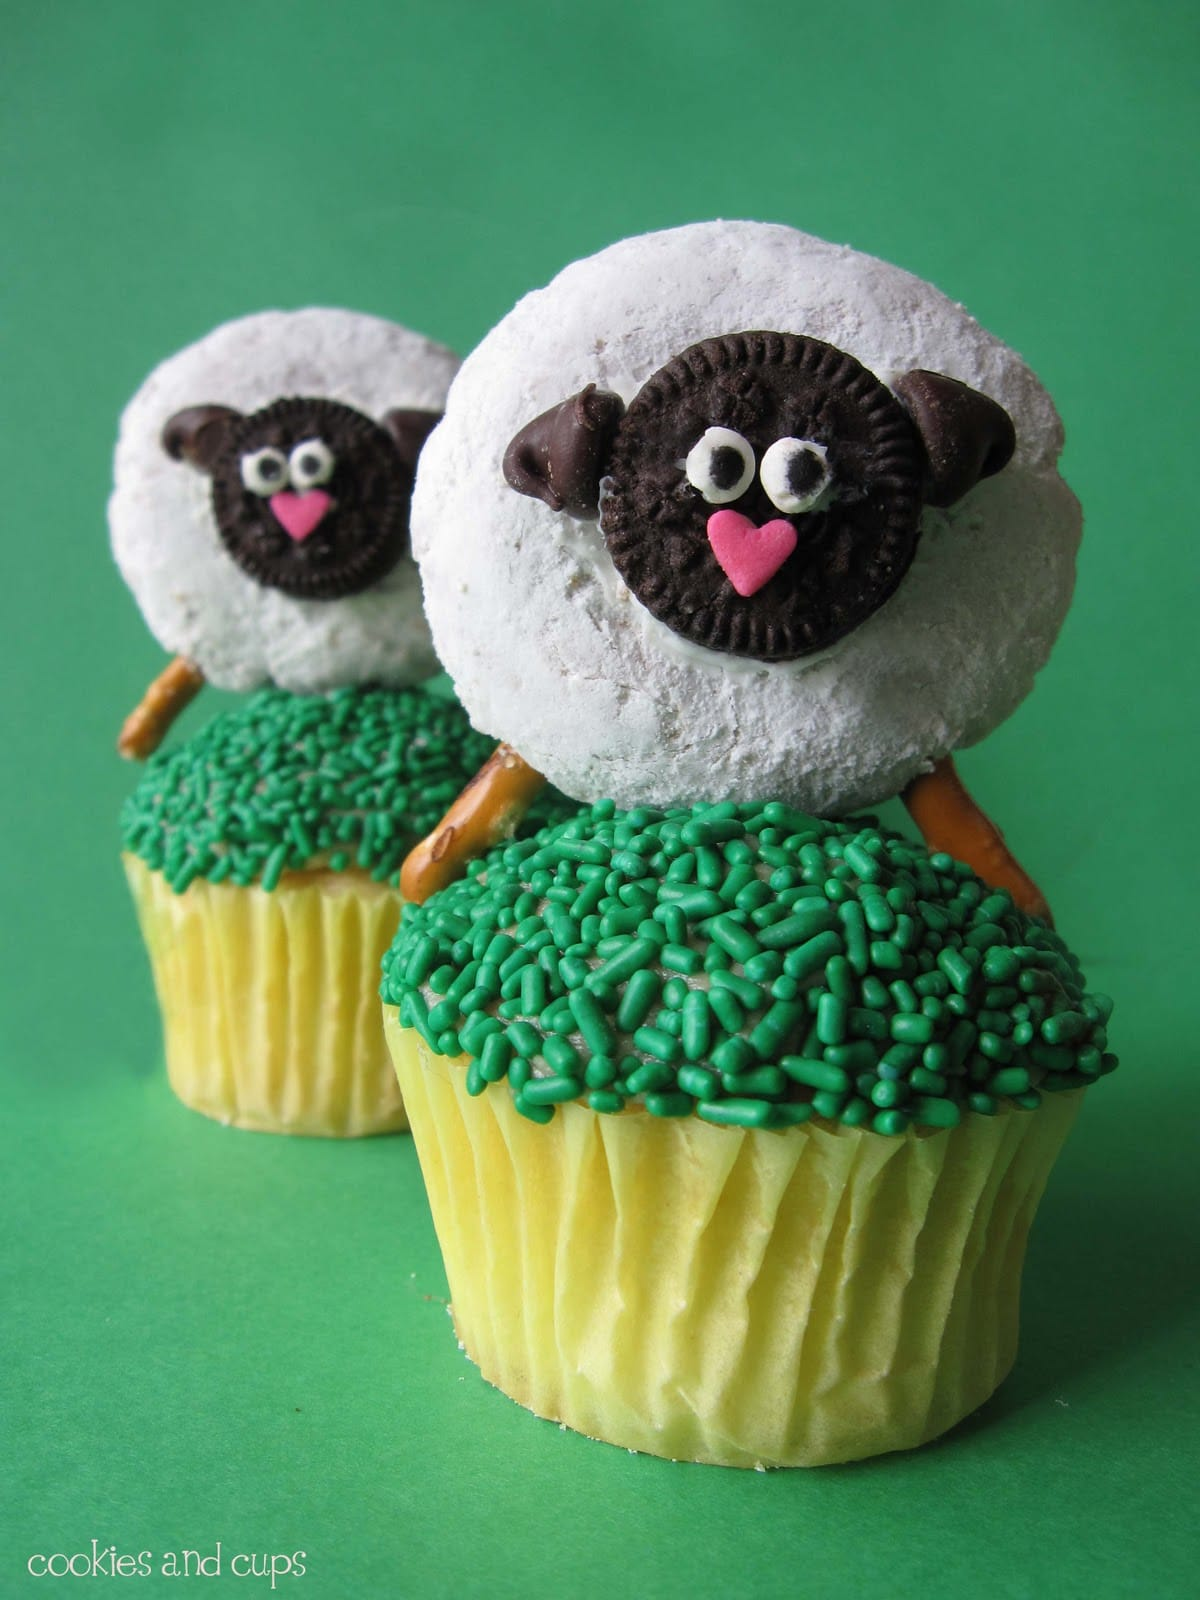 Two Sheep Cupcake Toppers on Top of Two Cupcakes with Green Frosting and Green Sprinkles